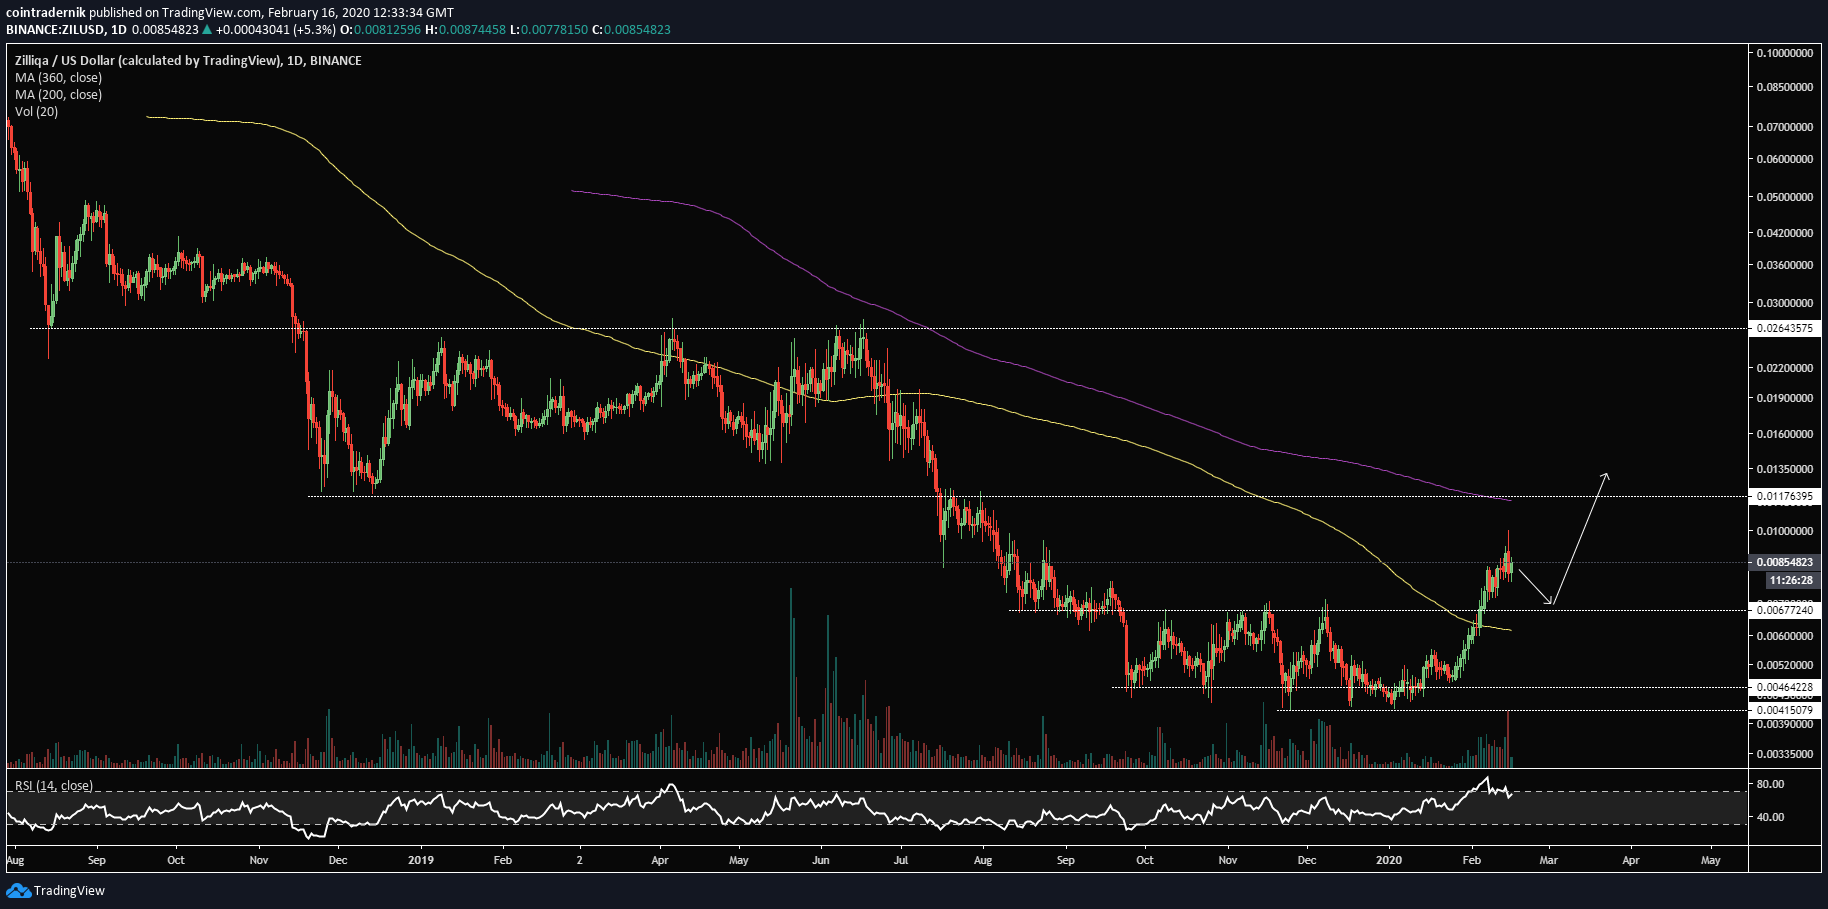 ZILUSDDaily